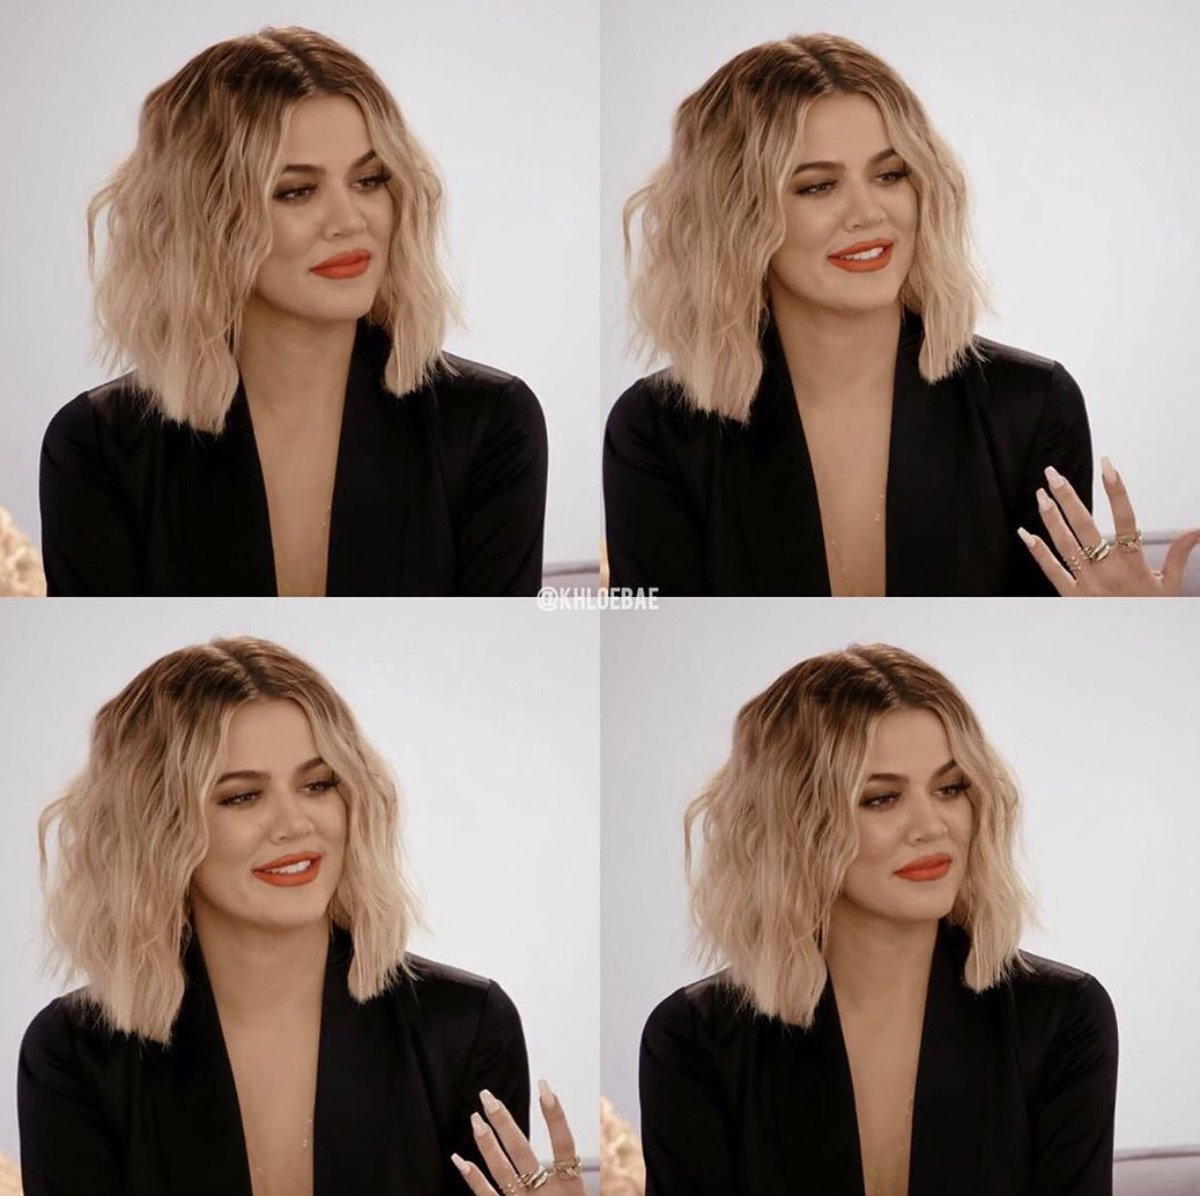 RT @NeveKardashian: Don't miss a brand new episode of @revengebody tonight at 9/8c on E! @khloekardashian https://t.co/f88iD1twiA